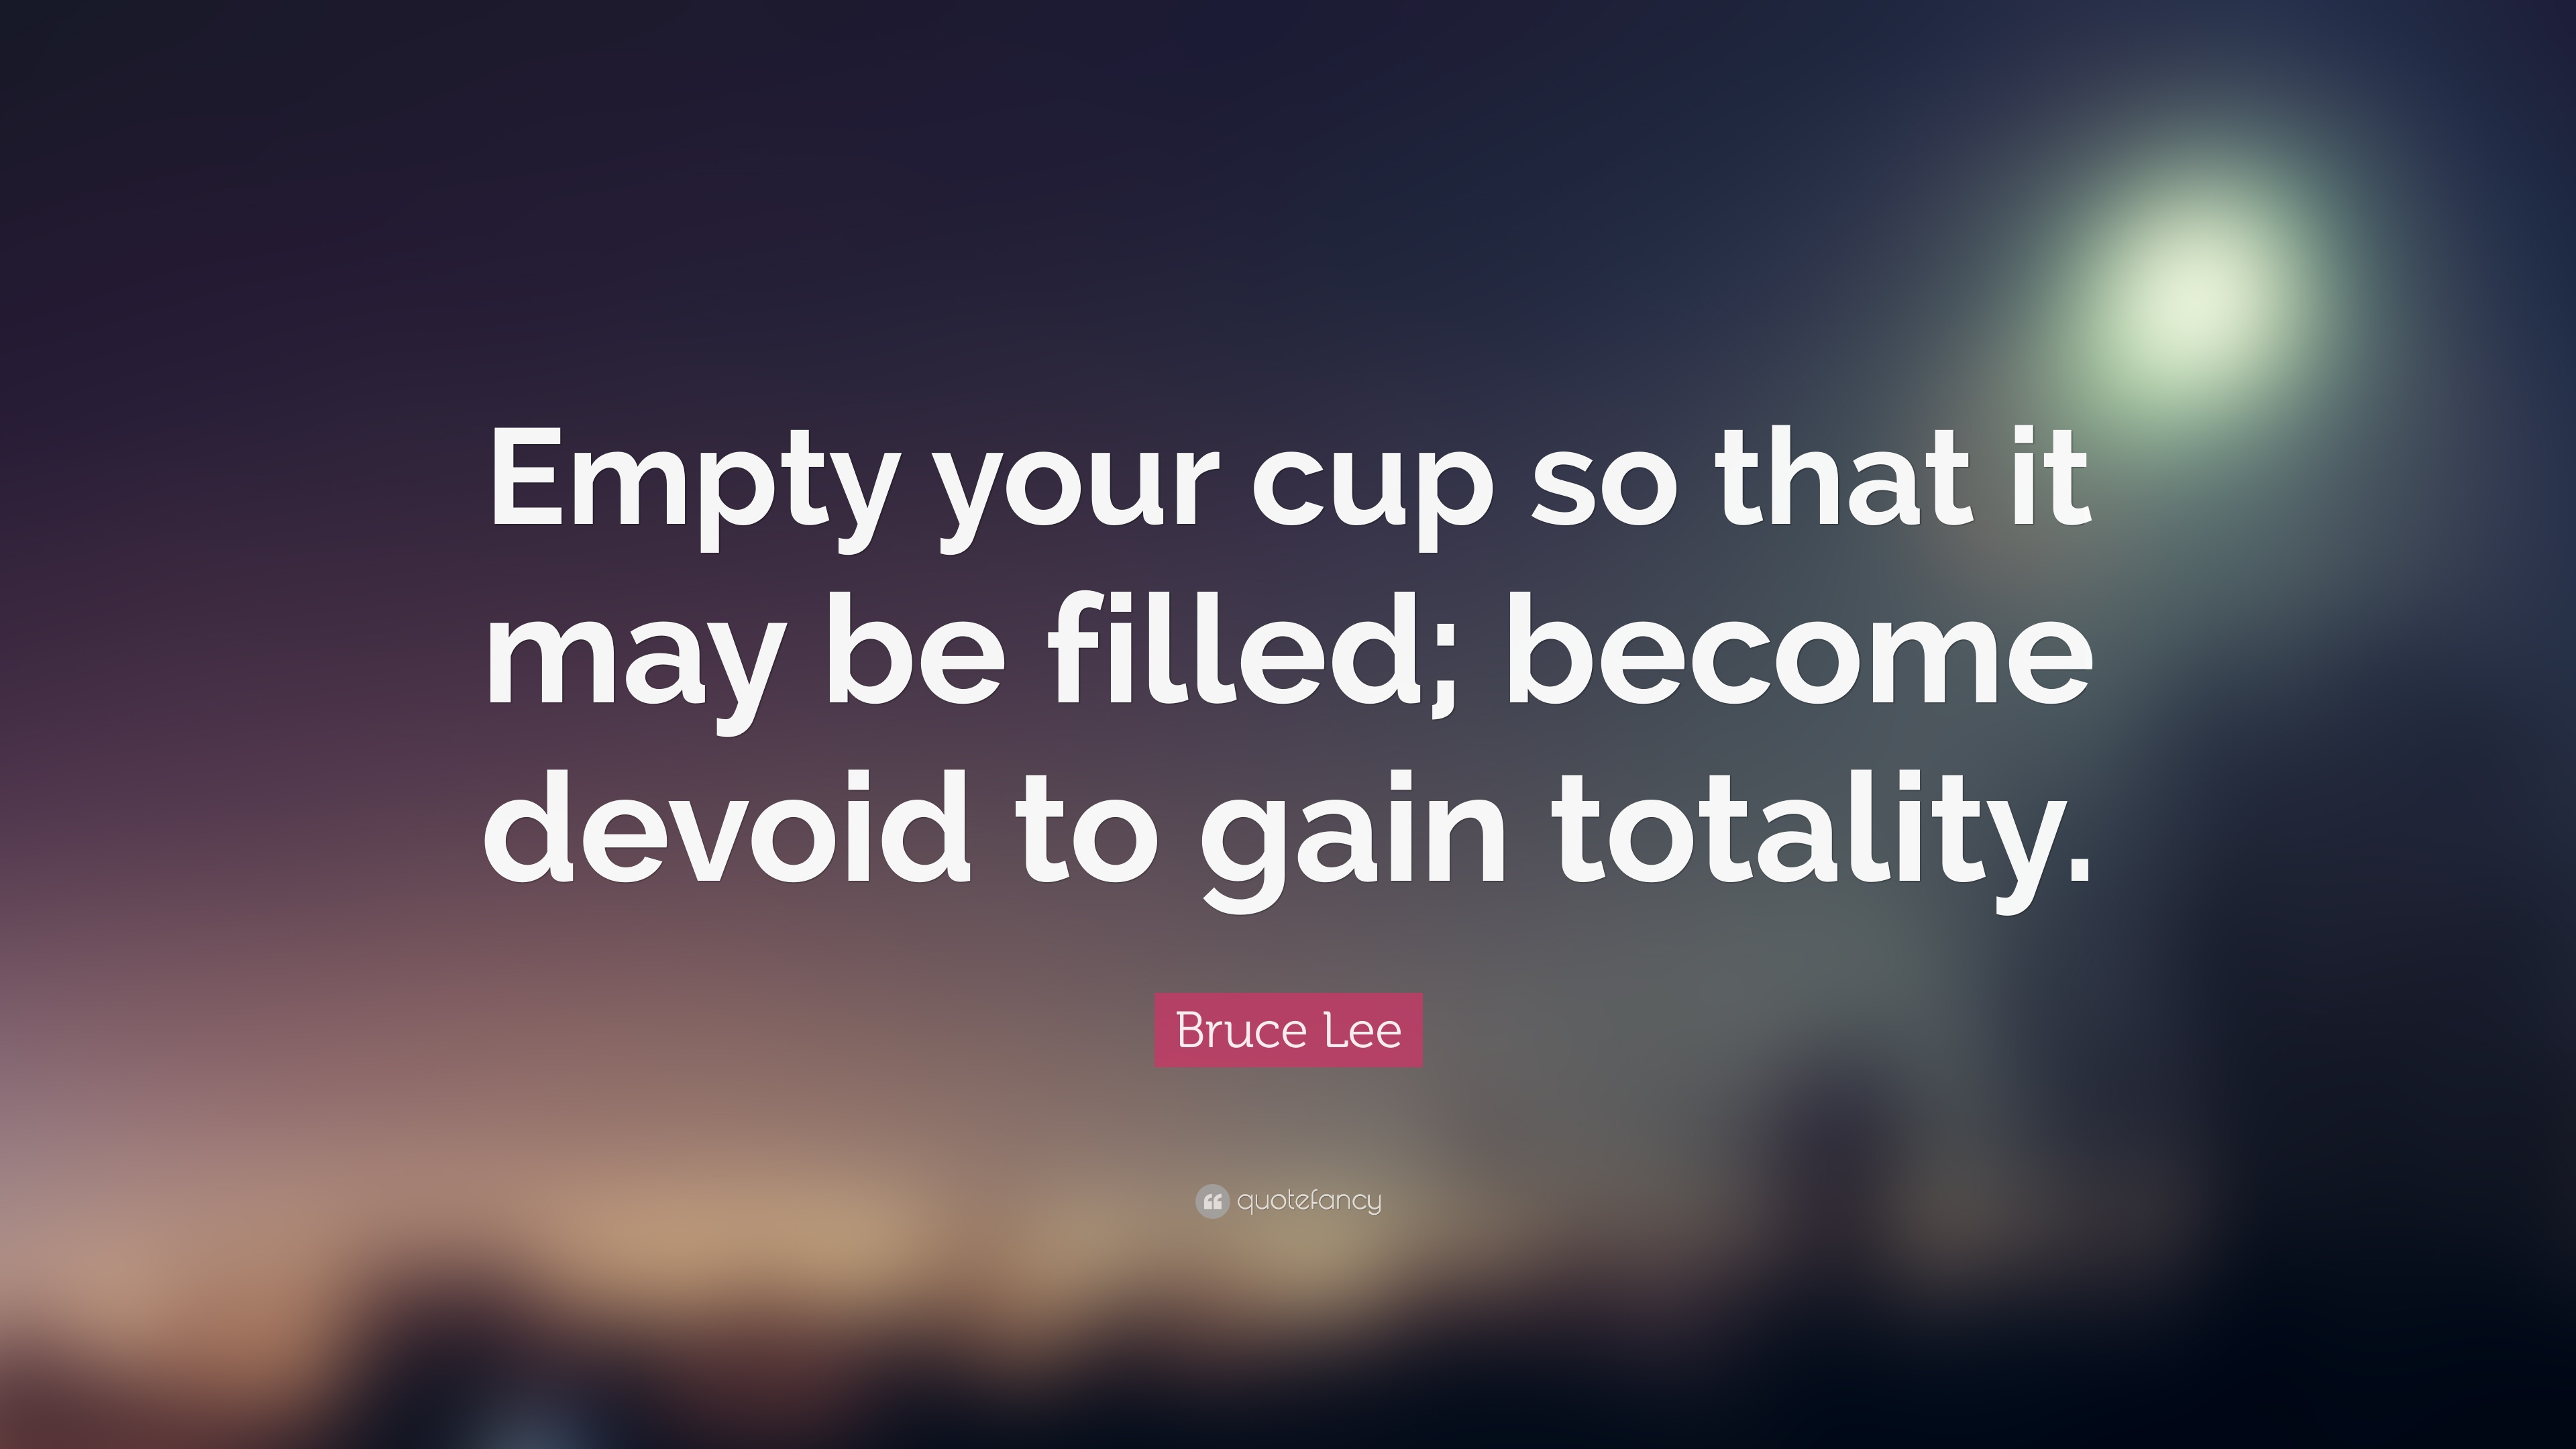 May Your Cup Empty Be Filled so That It